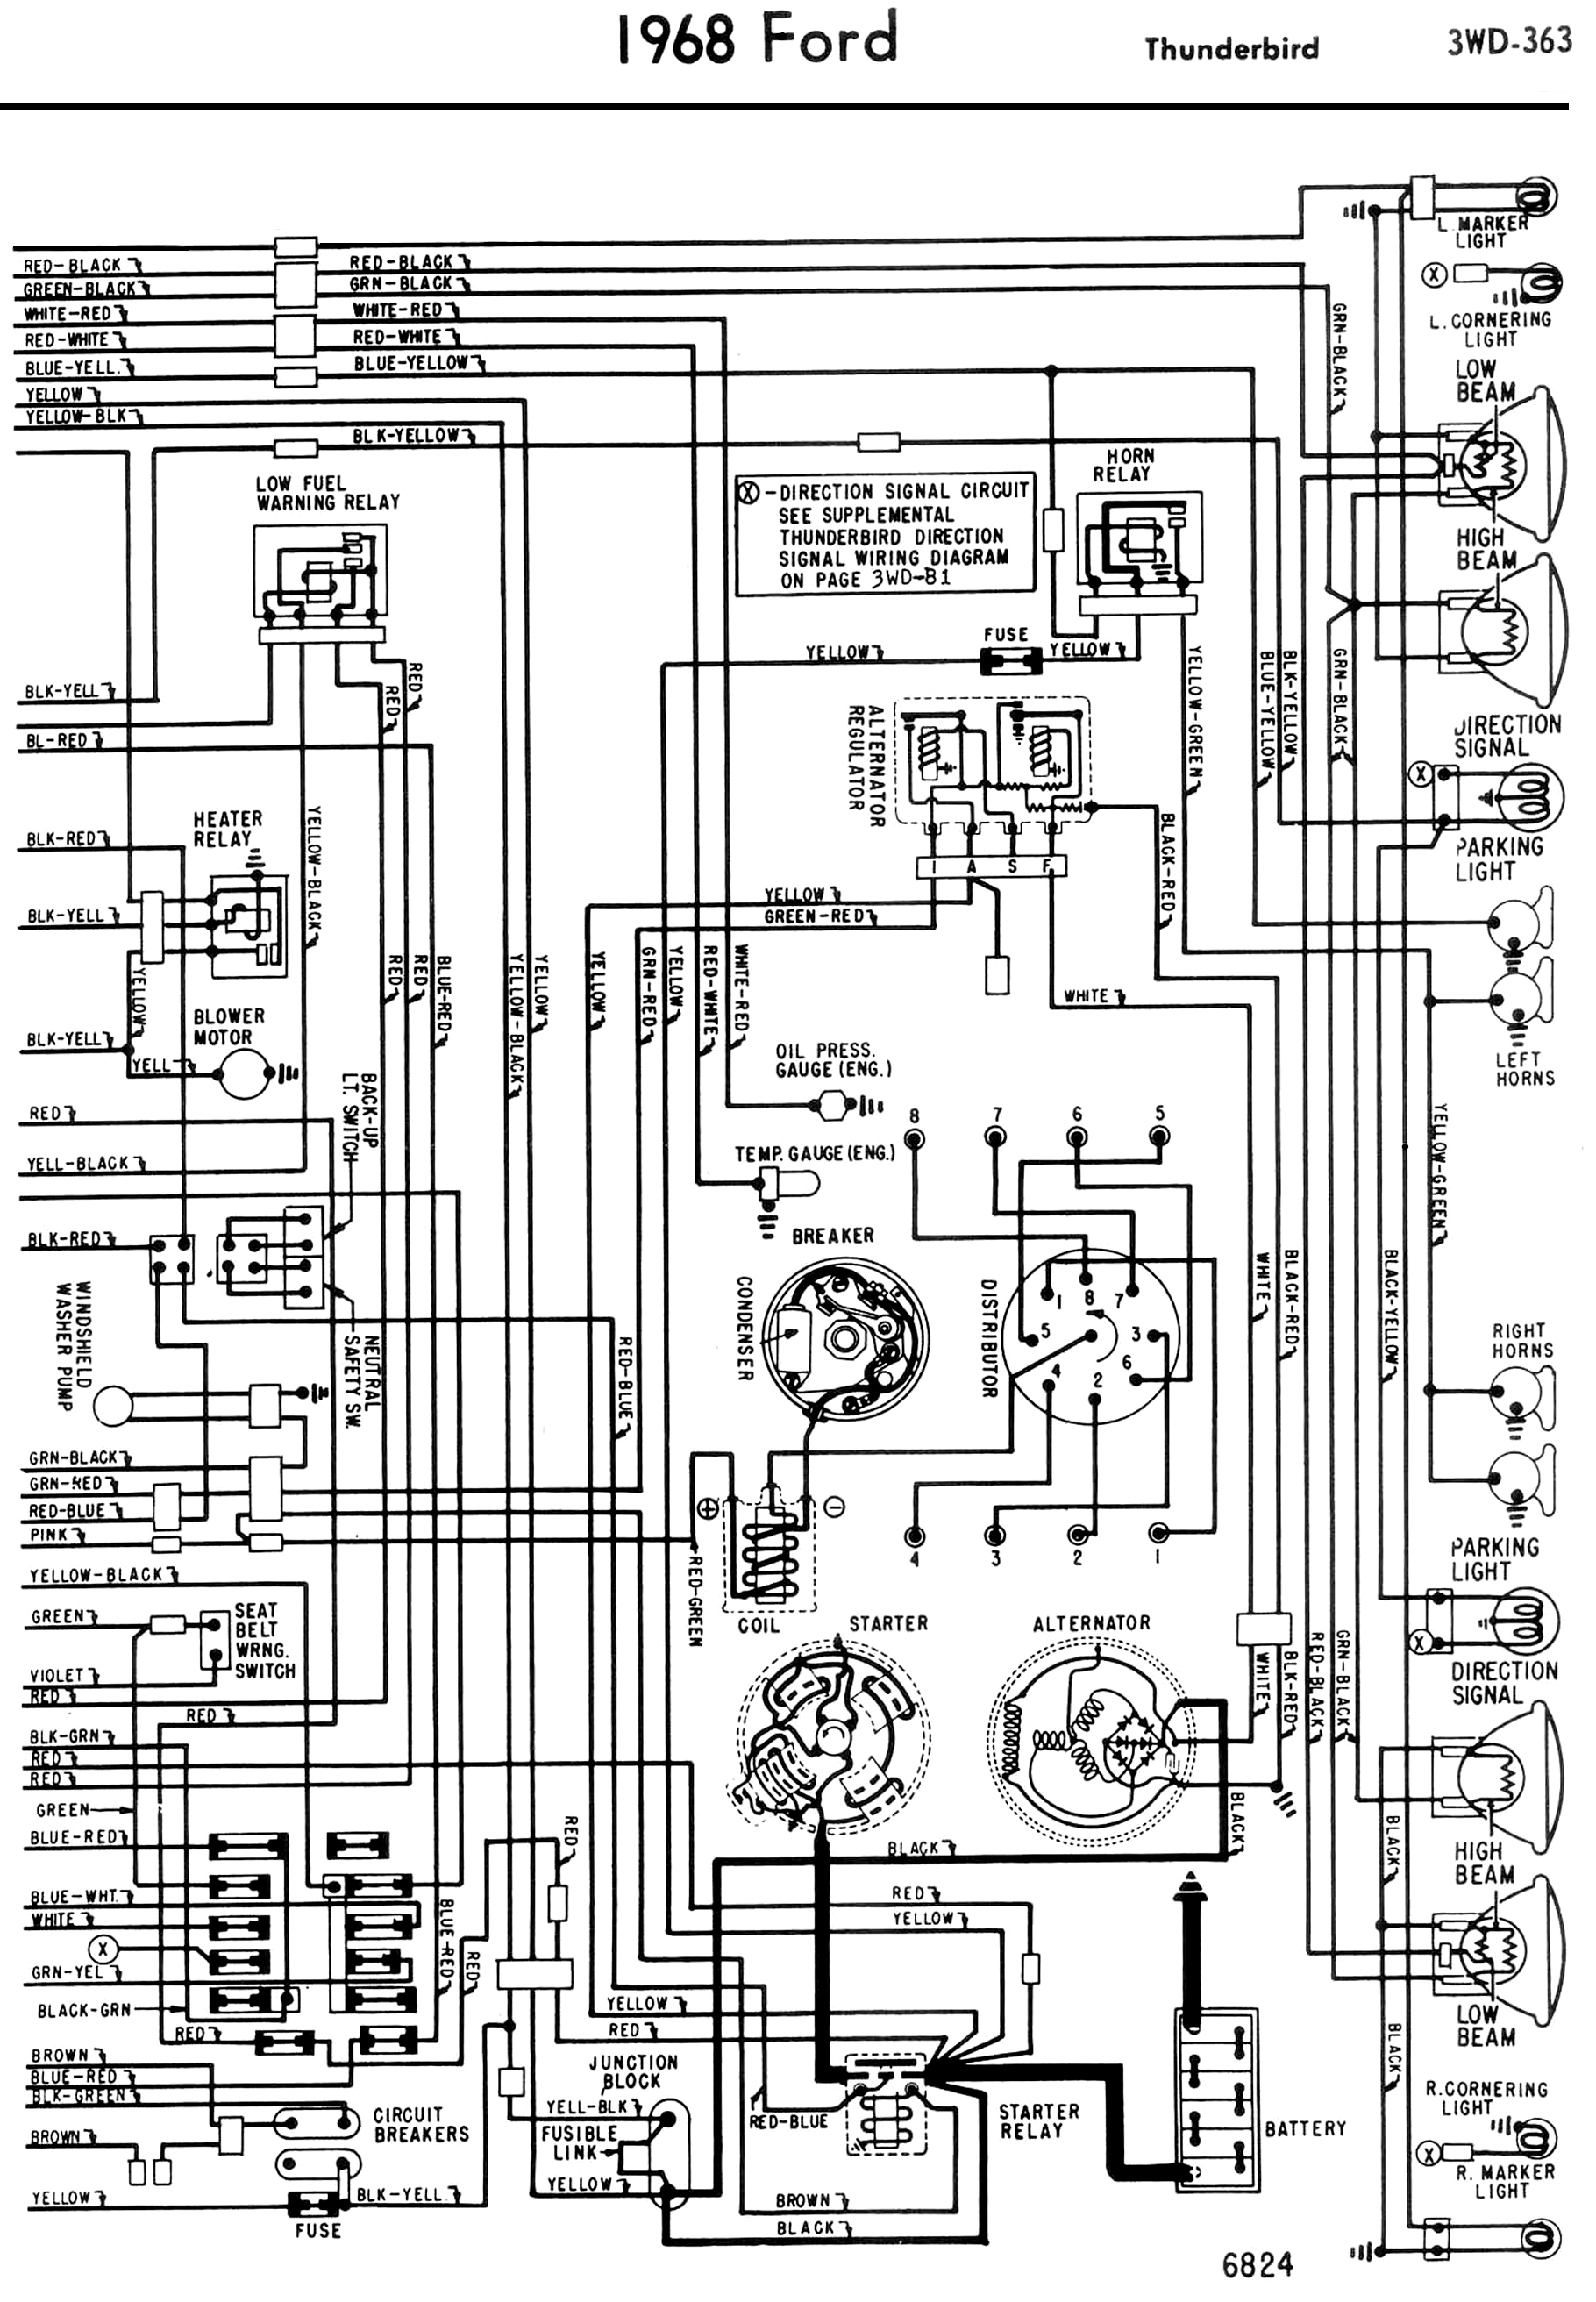 1968 Ford F100 Ignition Wiring Diagram Wire Data Schema 1970 F250 Electrical House U2022 Rh Universalservices Co Alternator Harness